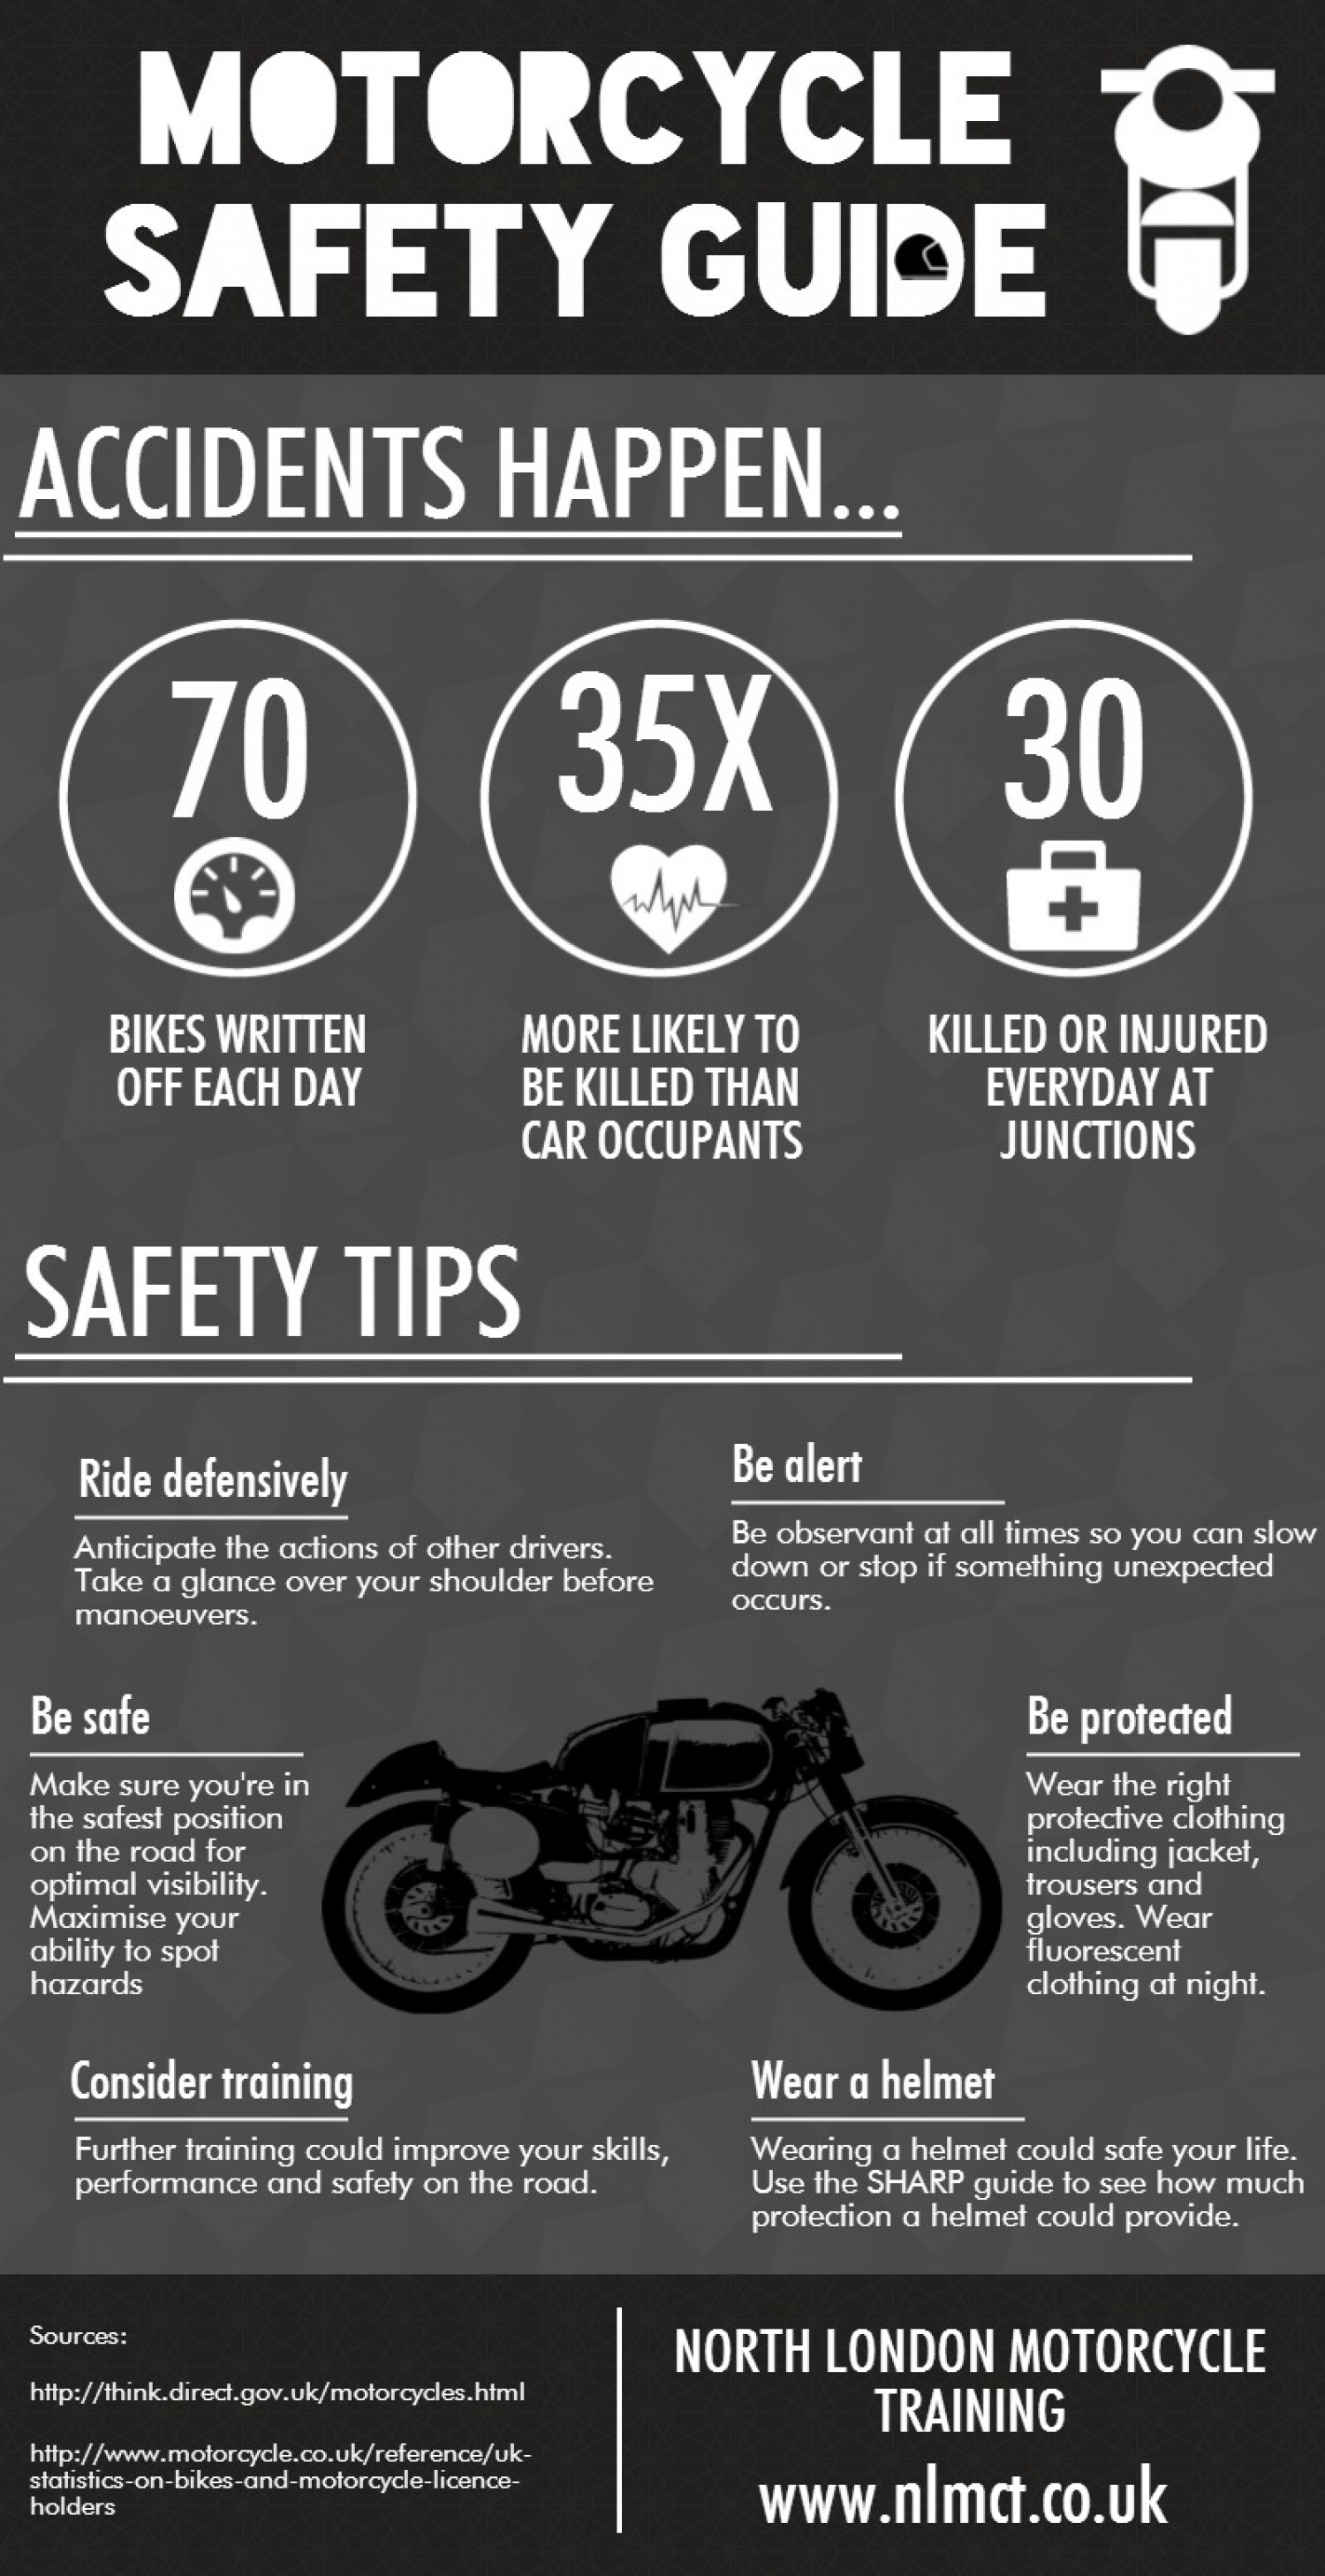 motorcycle safety pictures  Motorcycle Safety Guide | Visual.ly